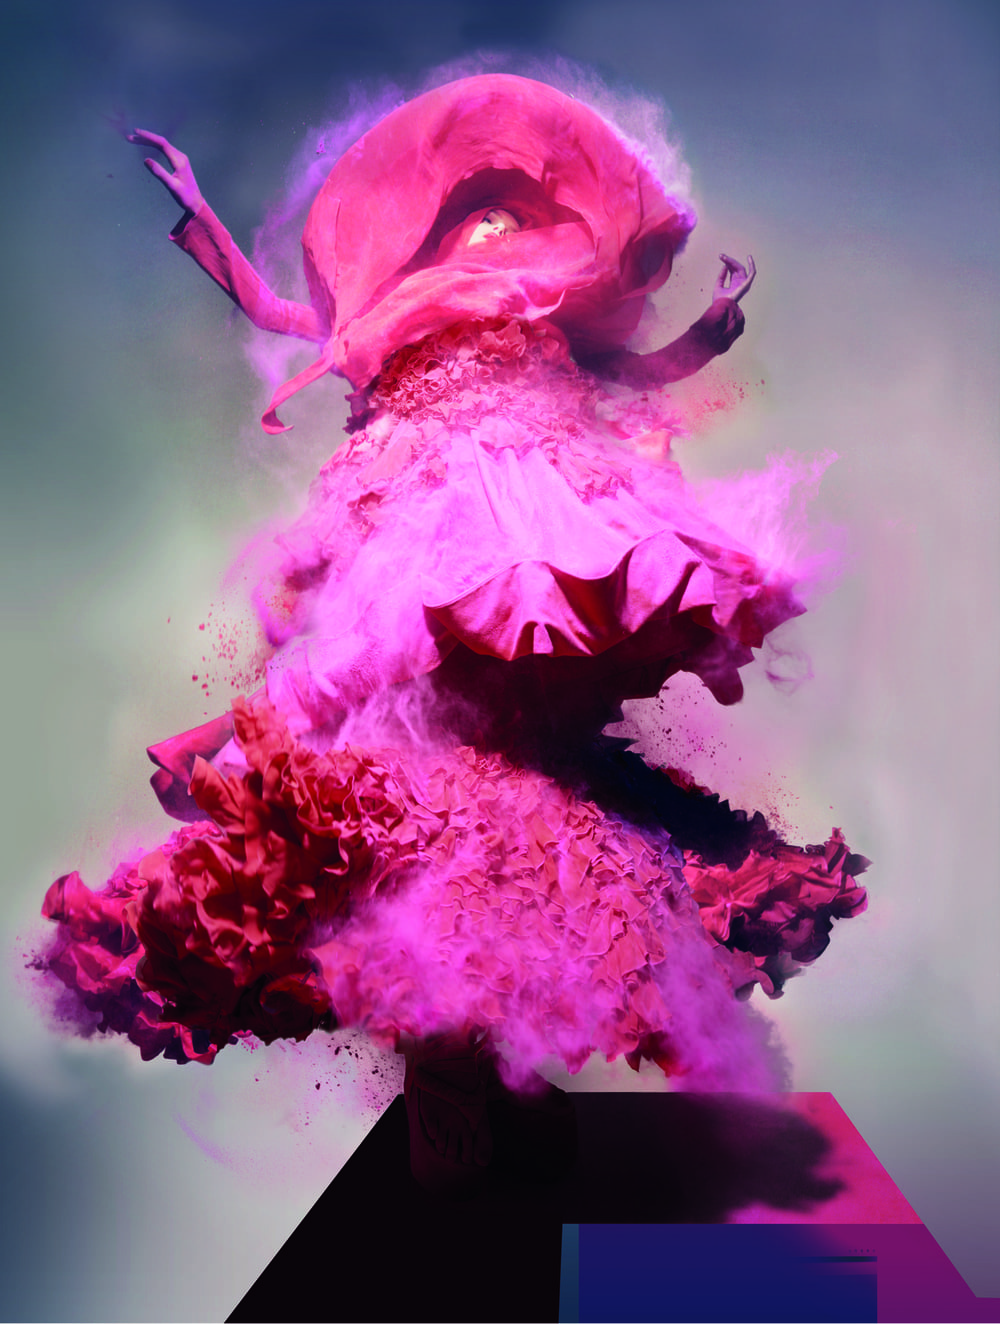 Hospital Rooms is an arts and mental health charity that believes in the enduring power of the arts to instil value, dignity and wellbeing in people.Our aim is to disrupt the barriers that limit access to art and culture for people using secure and locked mental health services. - Nick Knight, Lily, 2016